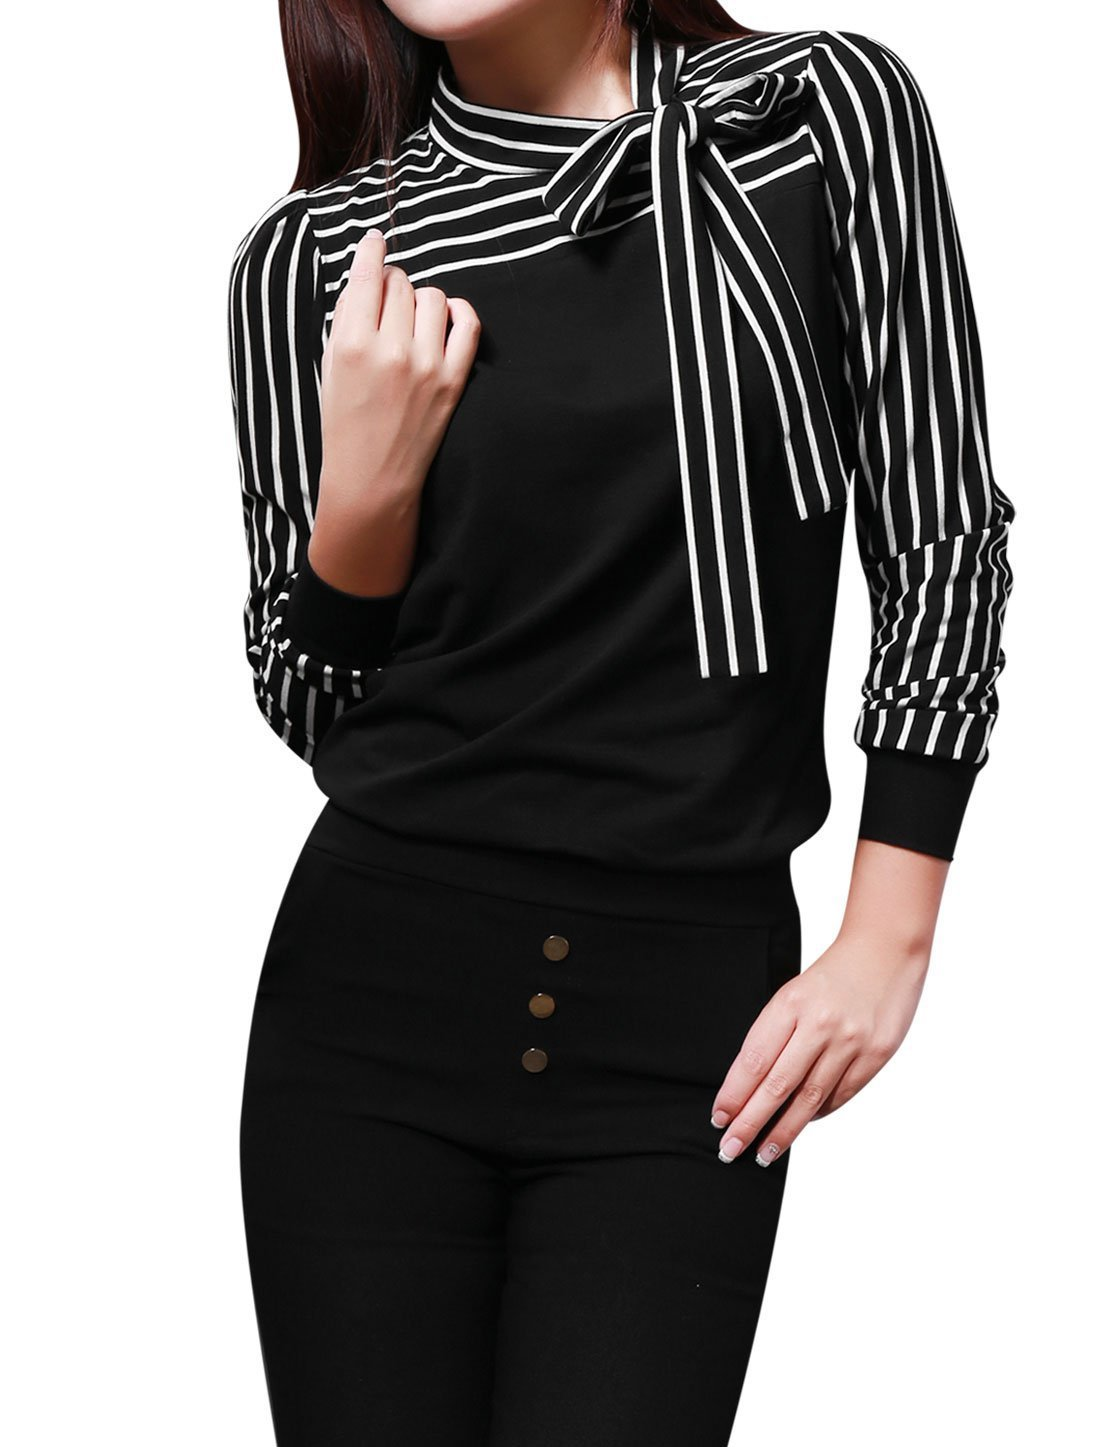 2e89c4d009 Allegra K Women s Long Sleeve Tie-bow Neck Striped Shirt Tops product image